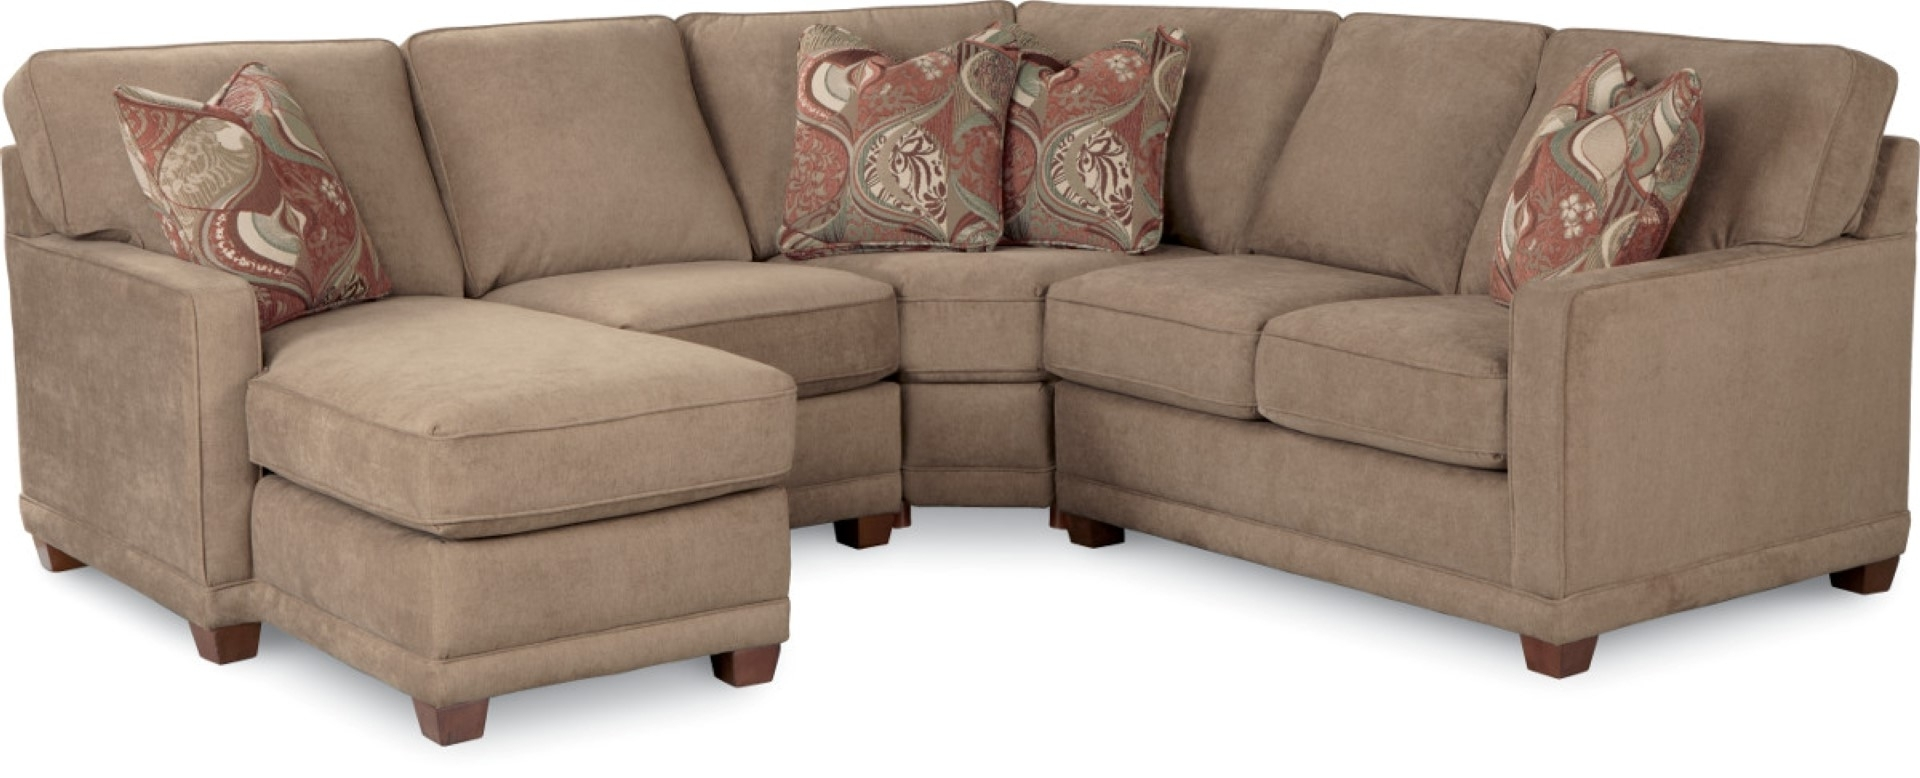 Lazy Boy Sectional Sofas In Well Known Kennedy Sectional Sofa – Town & Country Furniture (View 2 of 20)